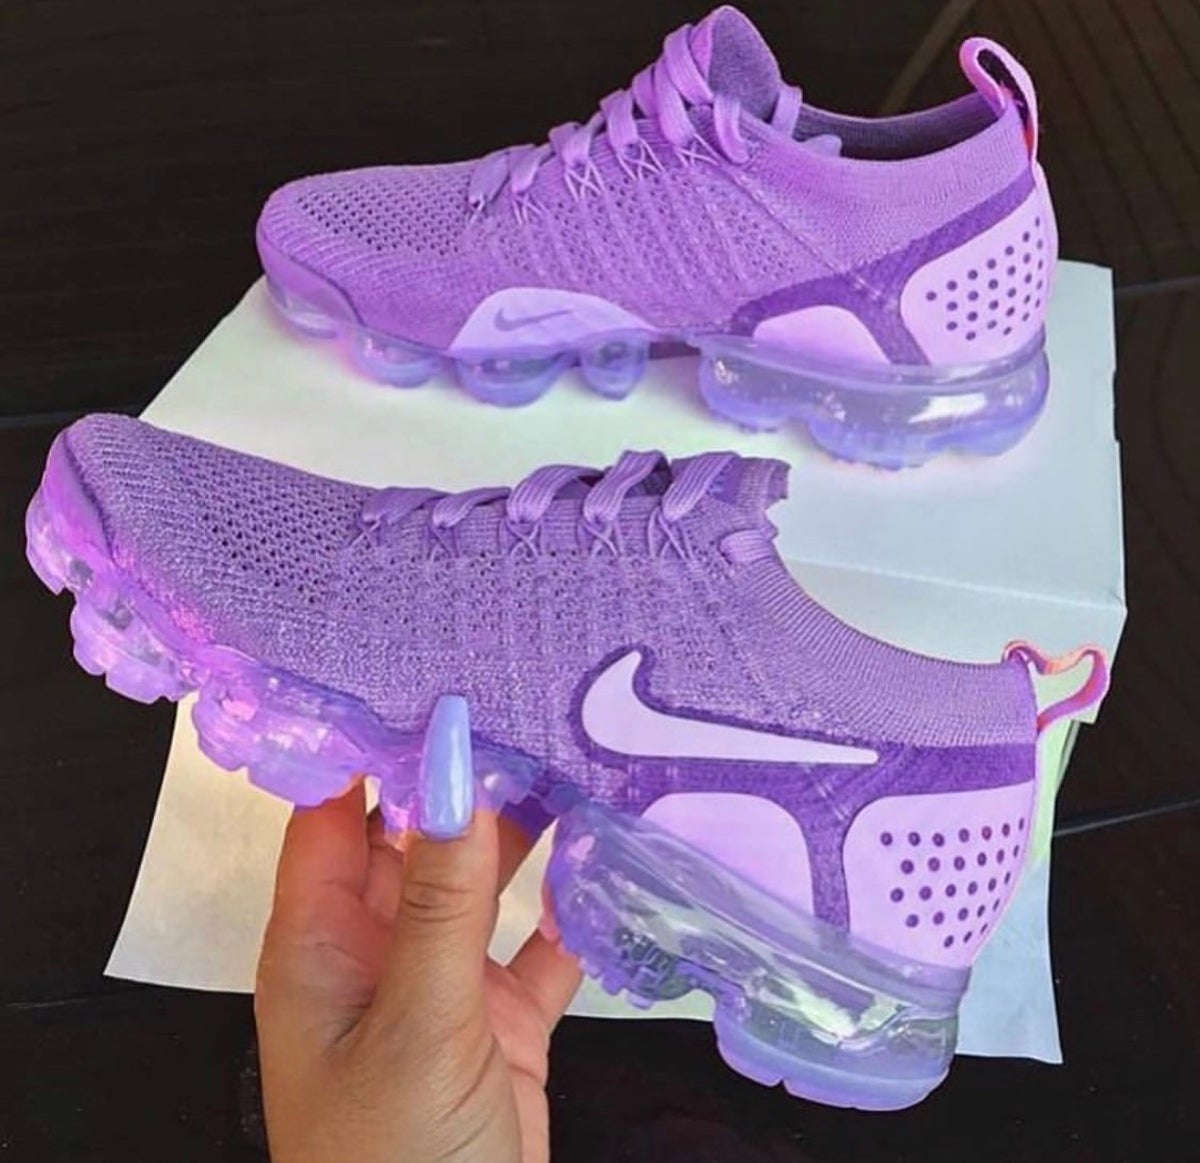 Image of Vapormax